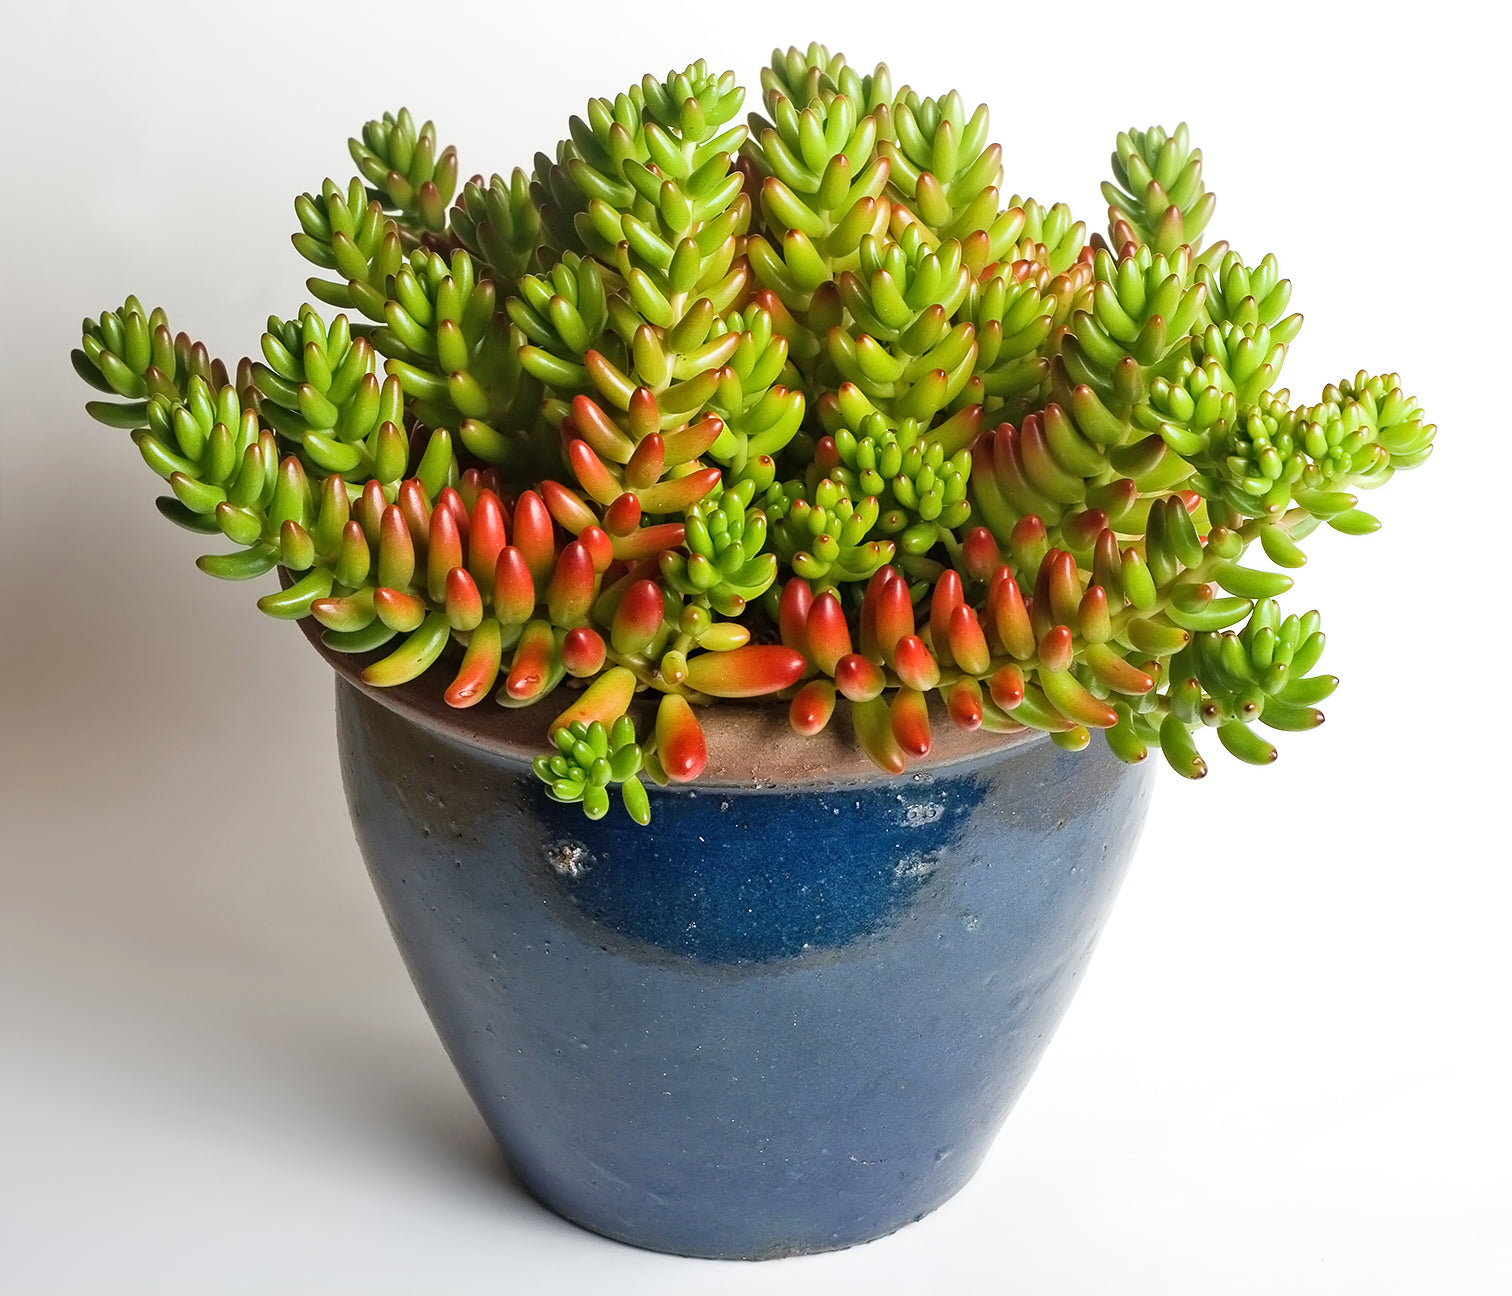 Blue ceramic plant pot containing sedum rubrotinctum